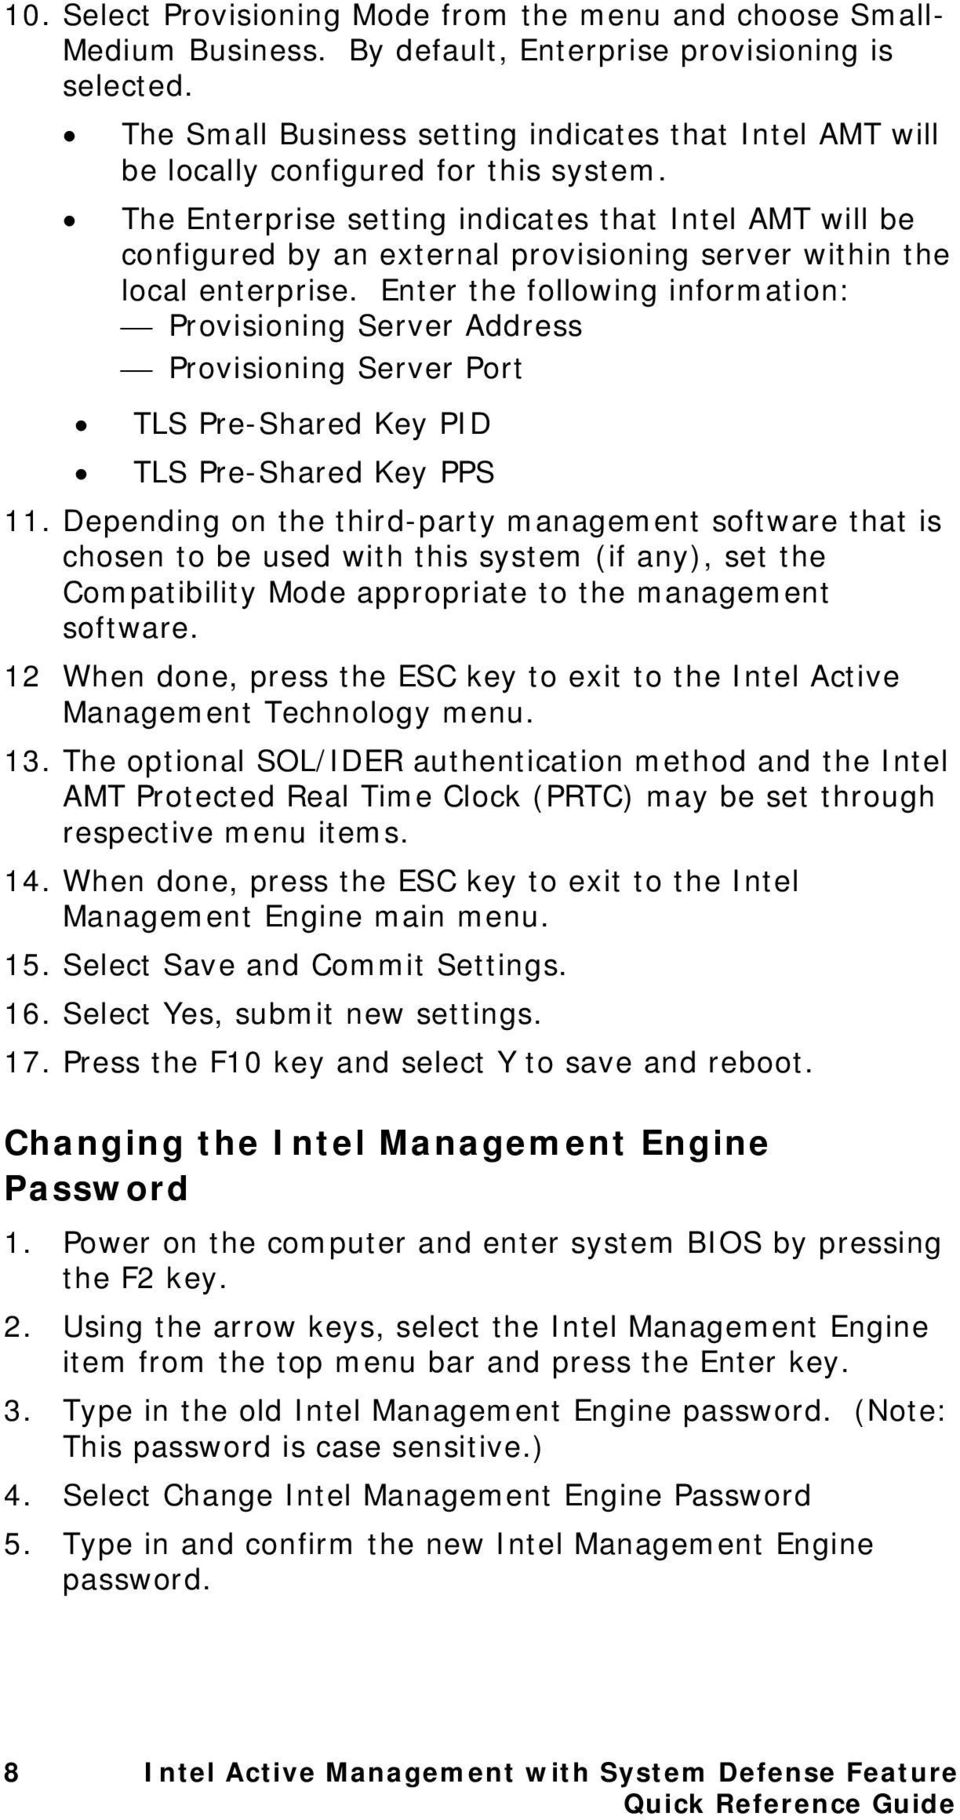 The Enterprise setting indicates that Intel AMT will be configured by an external provisioning server within the local enterprise.